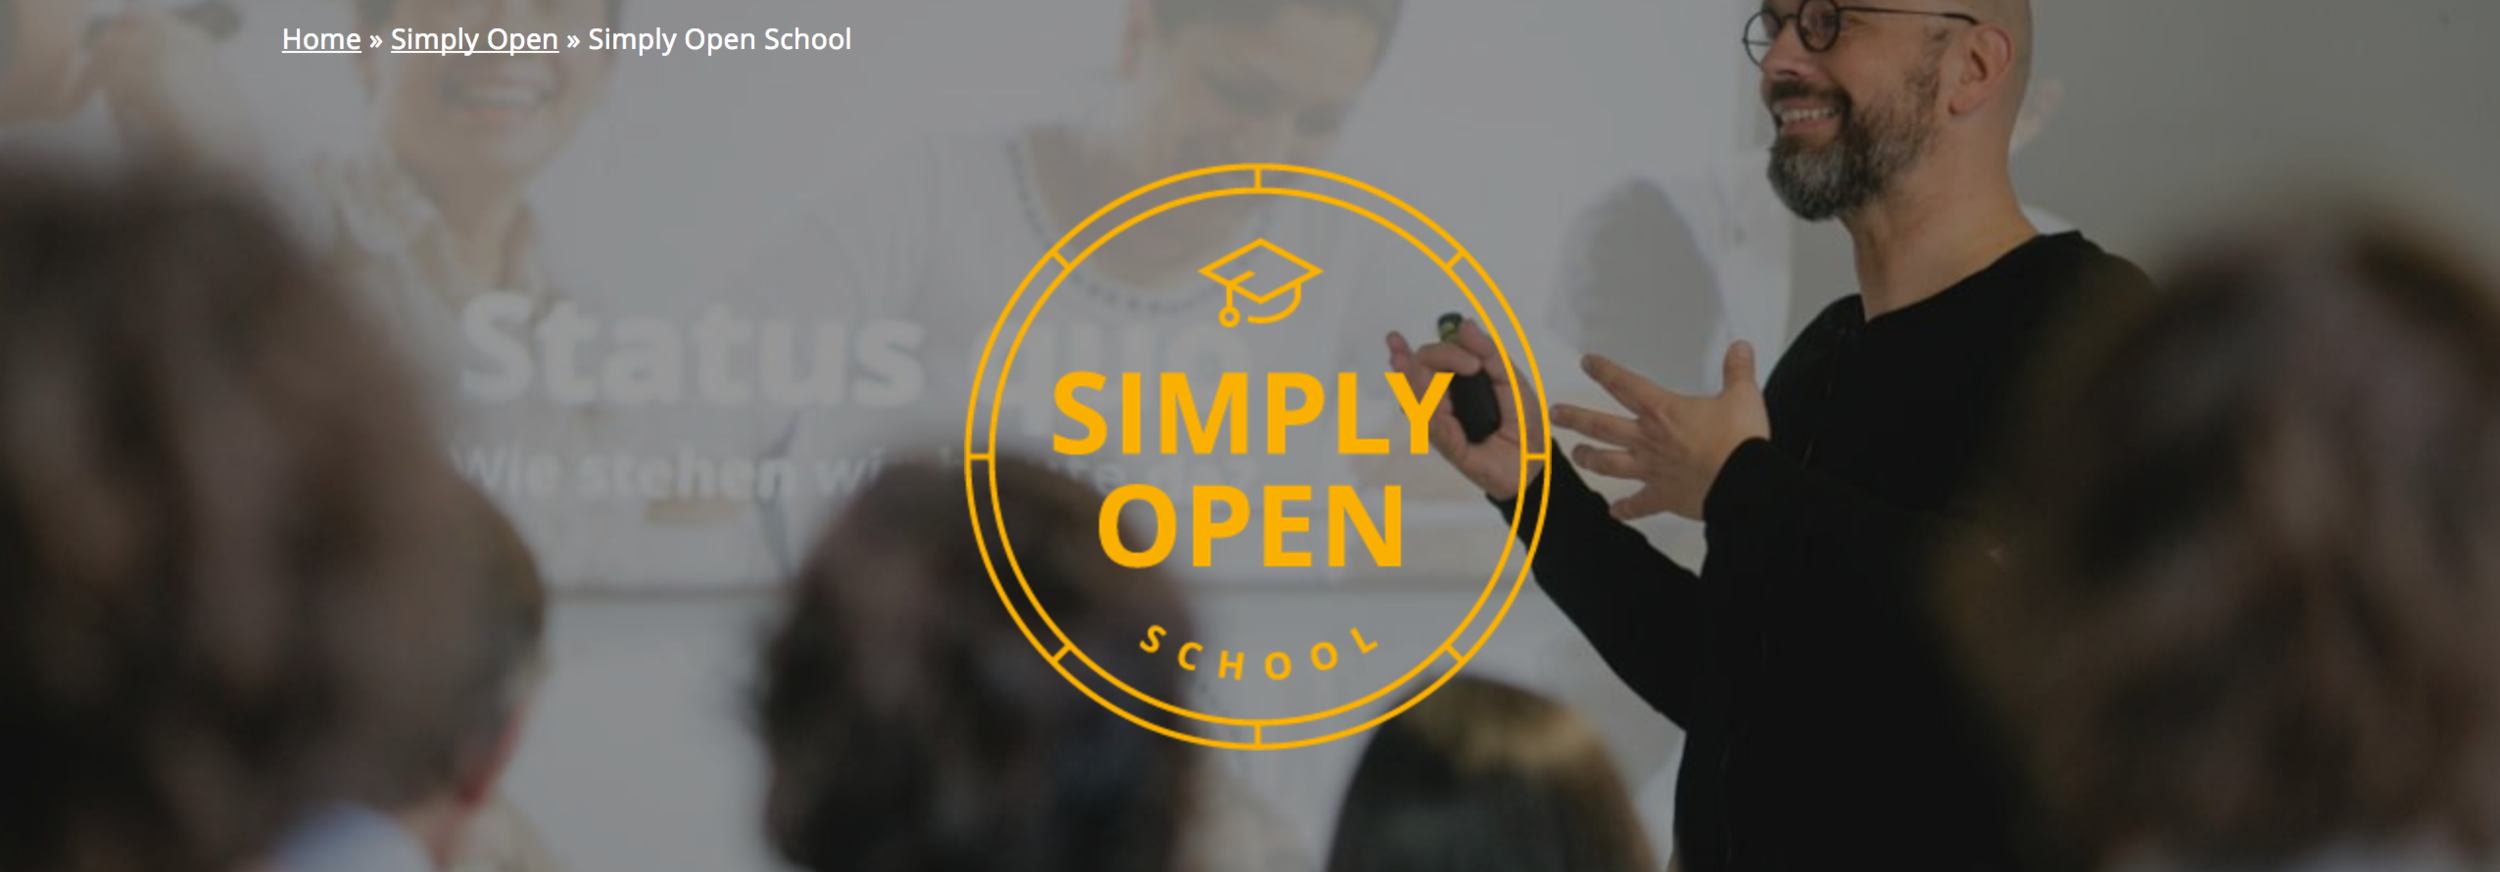 Simply Open School - dignit consulting und TELE Haase